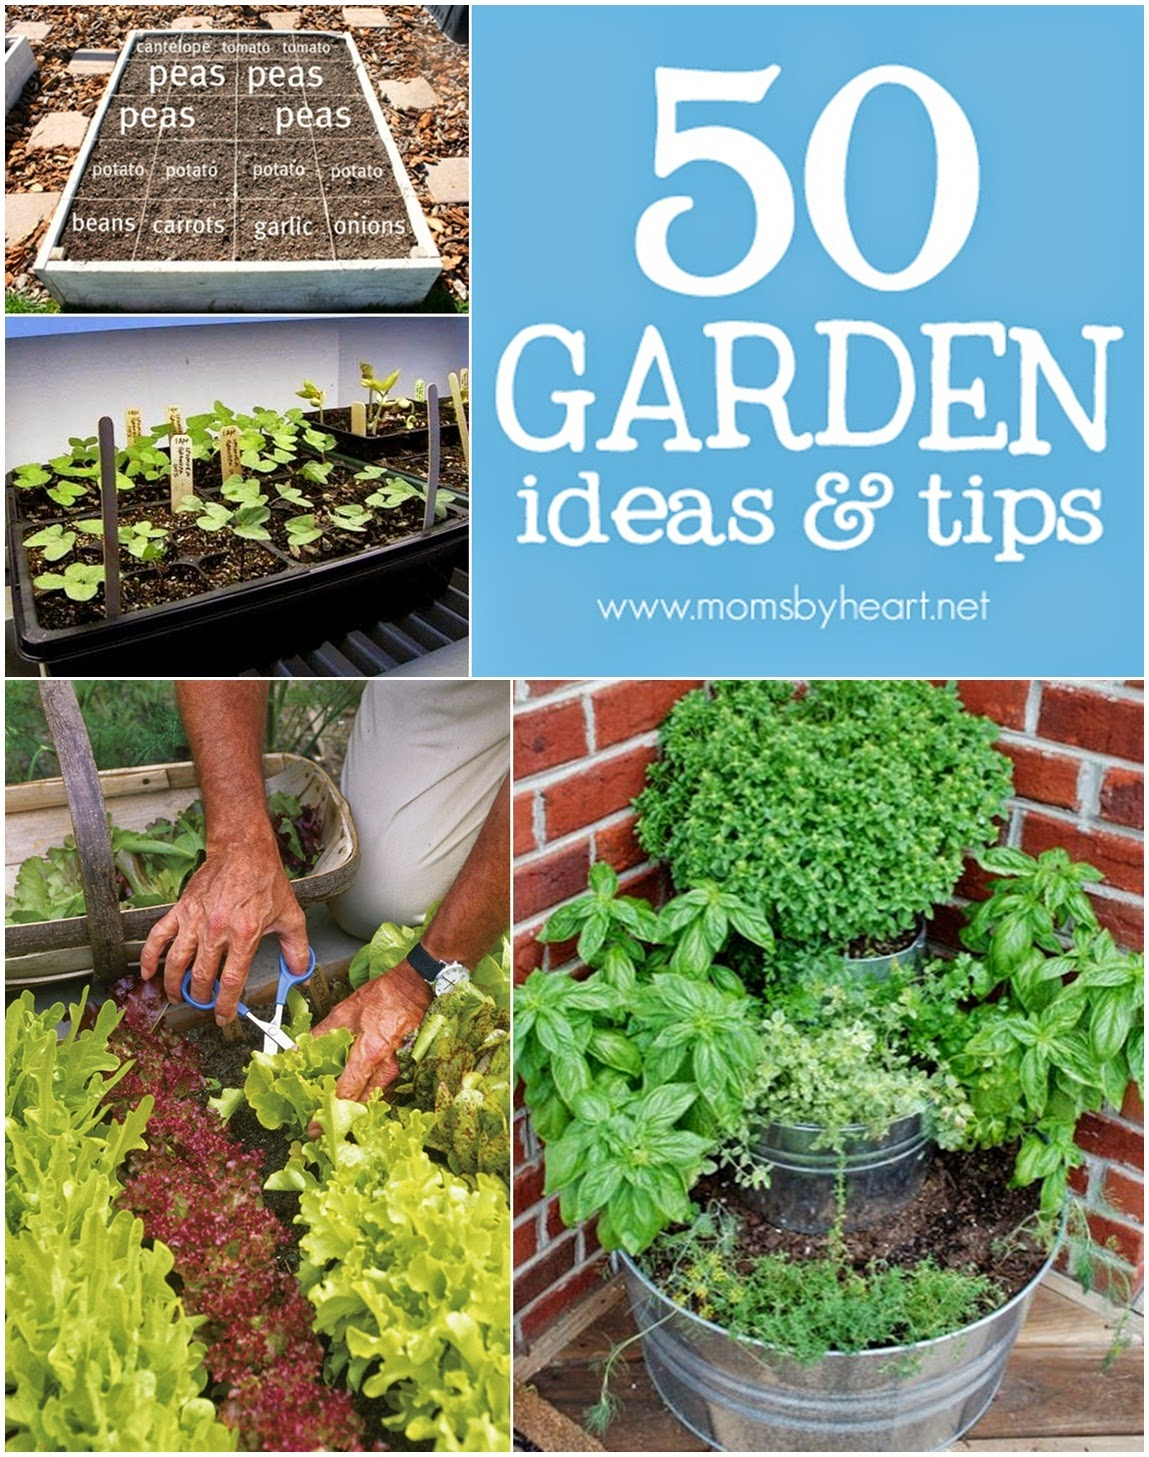 50 Gardening Ideas & Tips